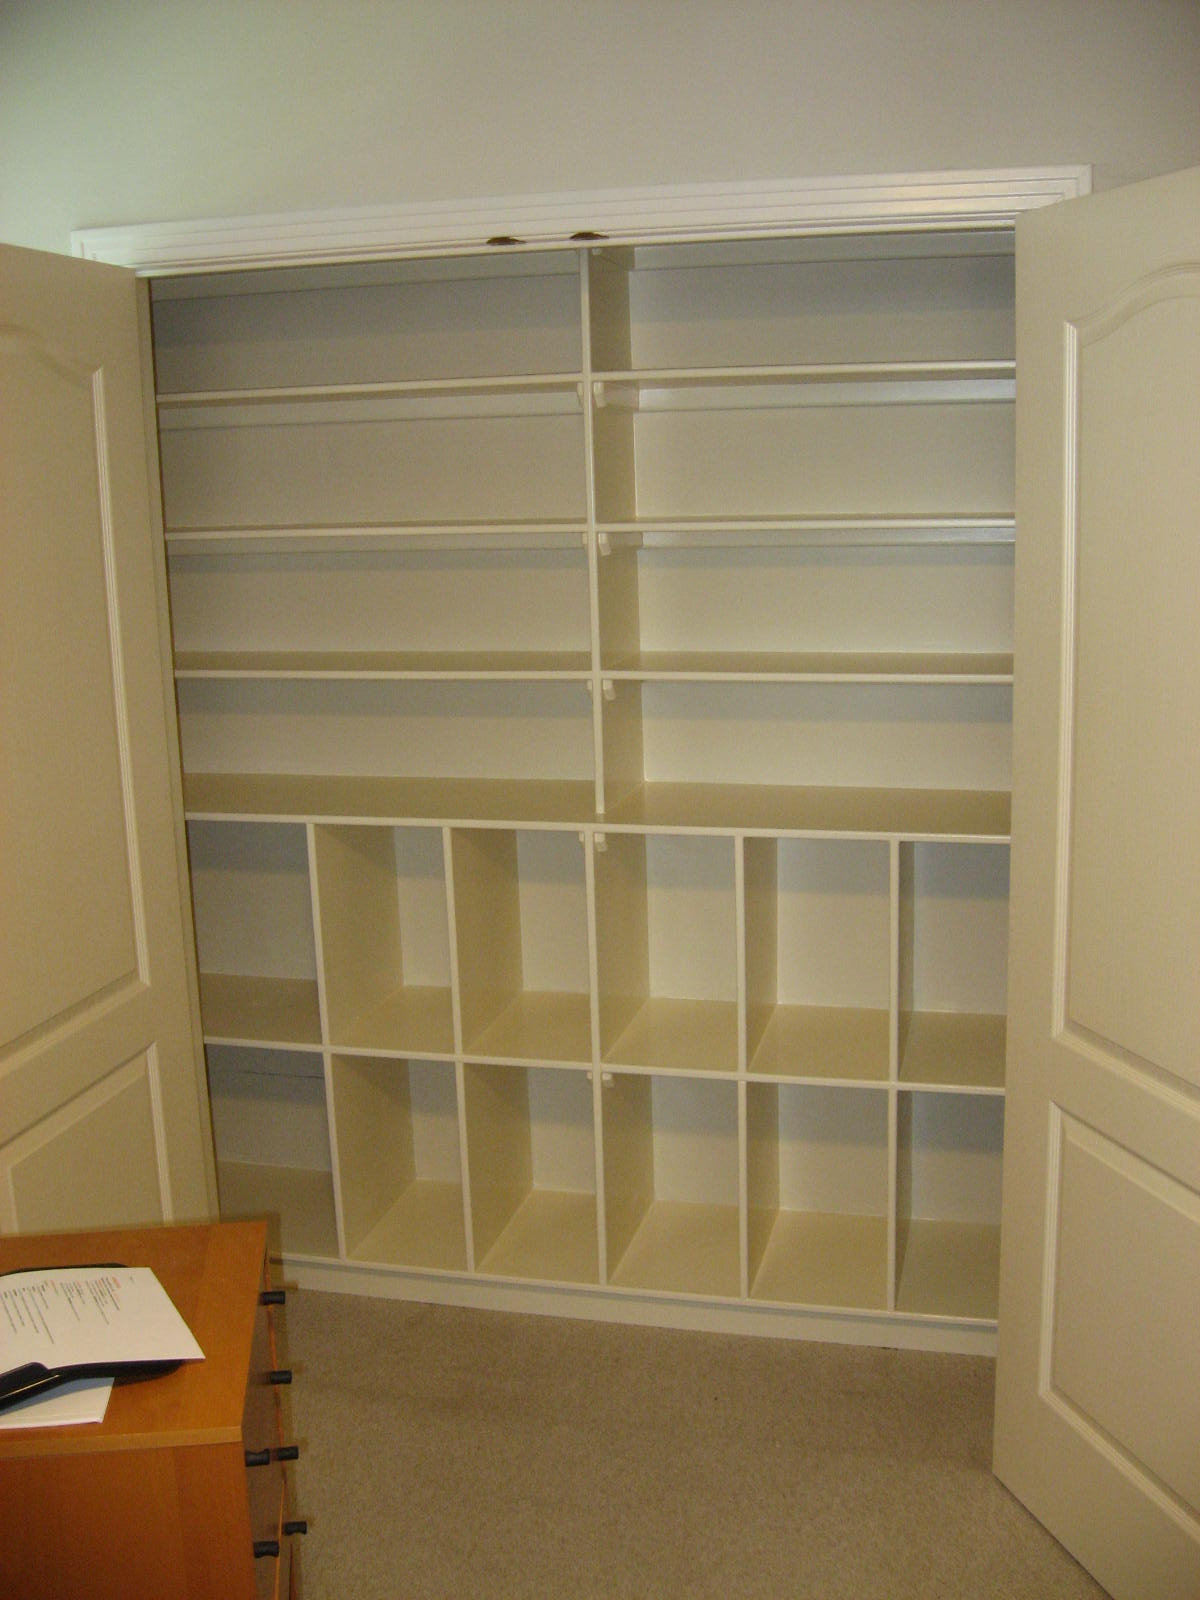 office closet shelving. Our Client Started A Business And Wanted To Use Her Office Closet Store Display Wares. But There Was Only Couple Of Flimsy Shelves, Shelving T